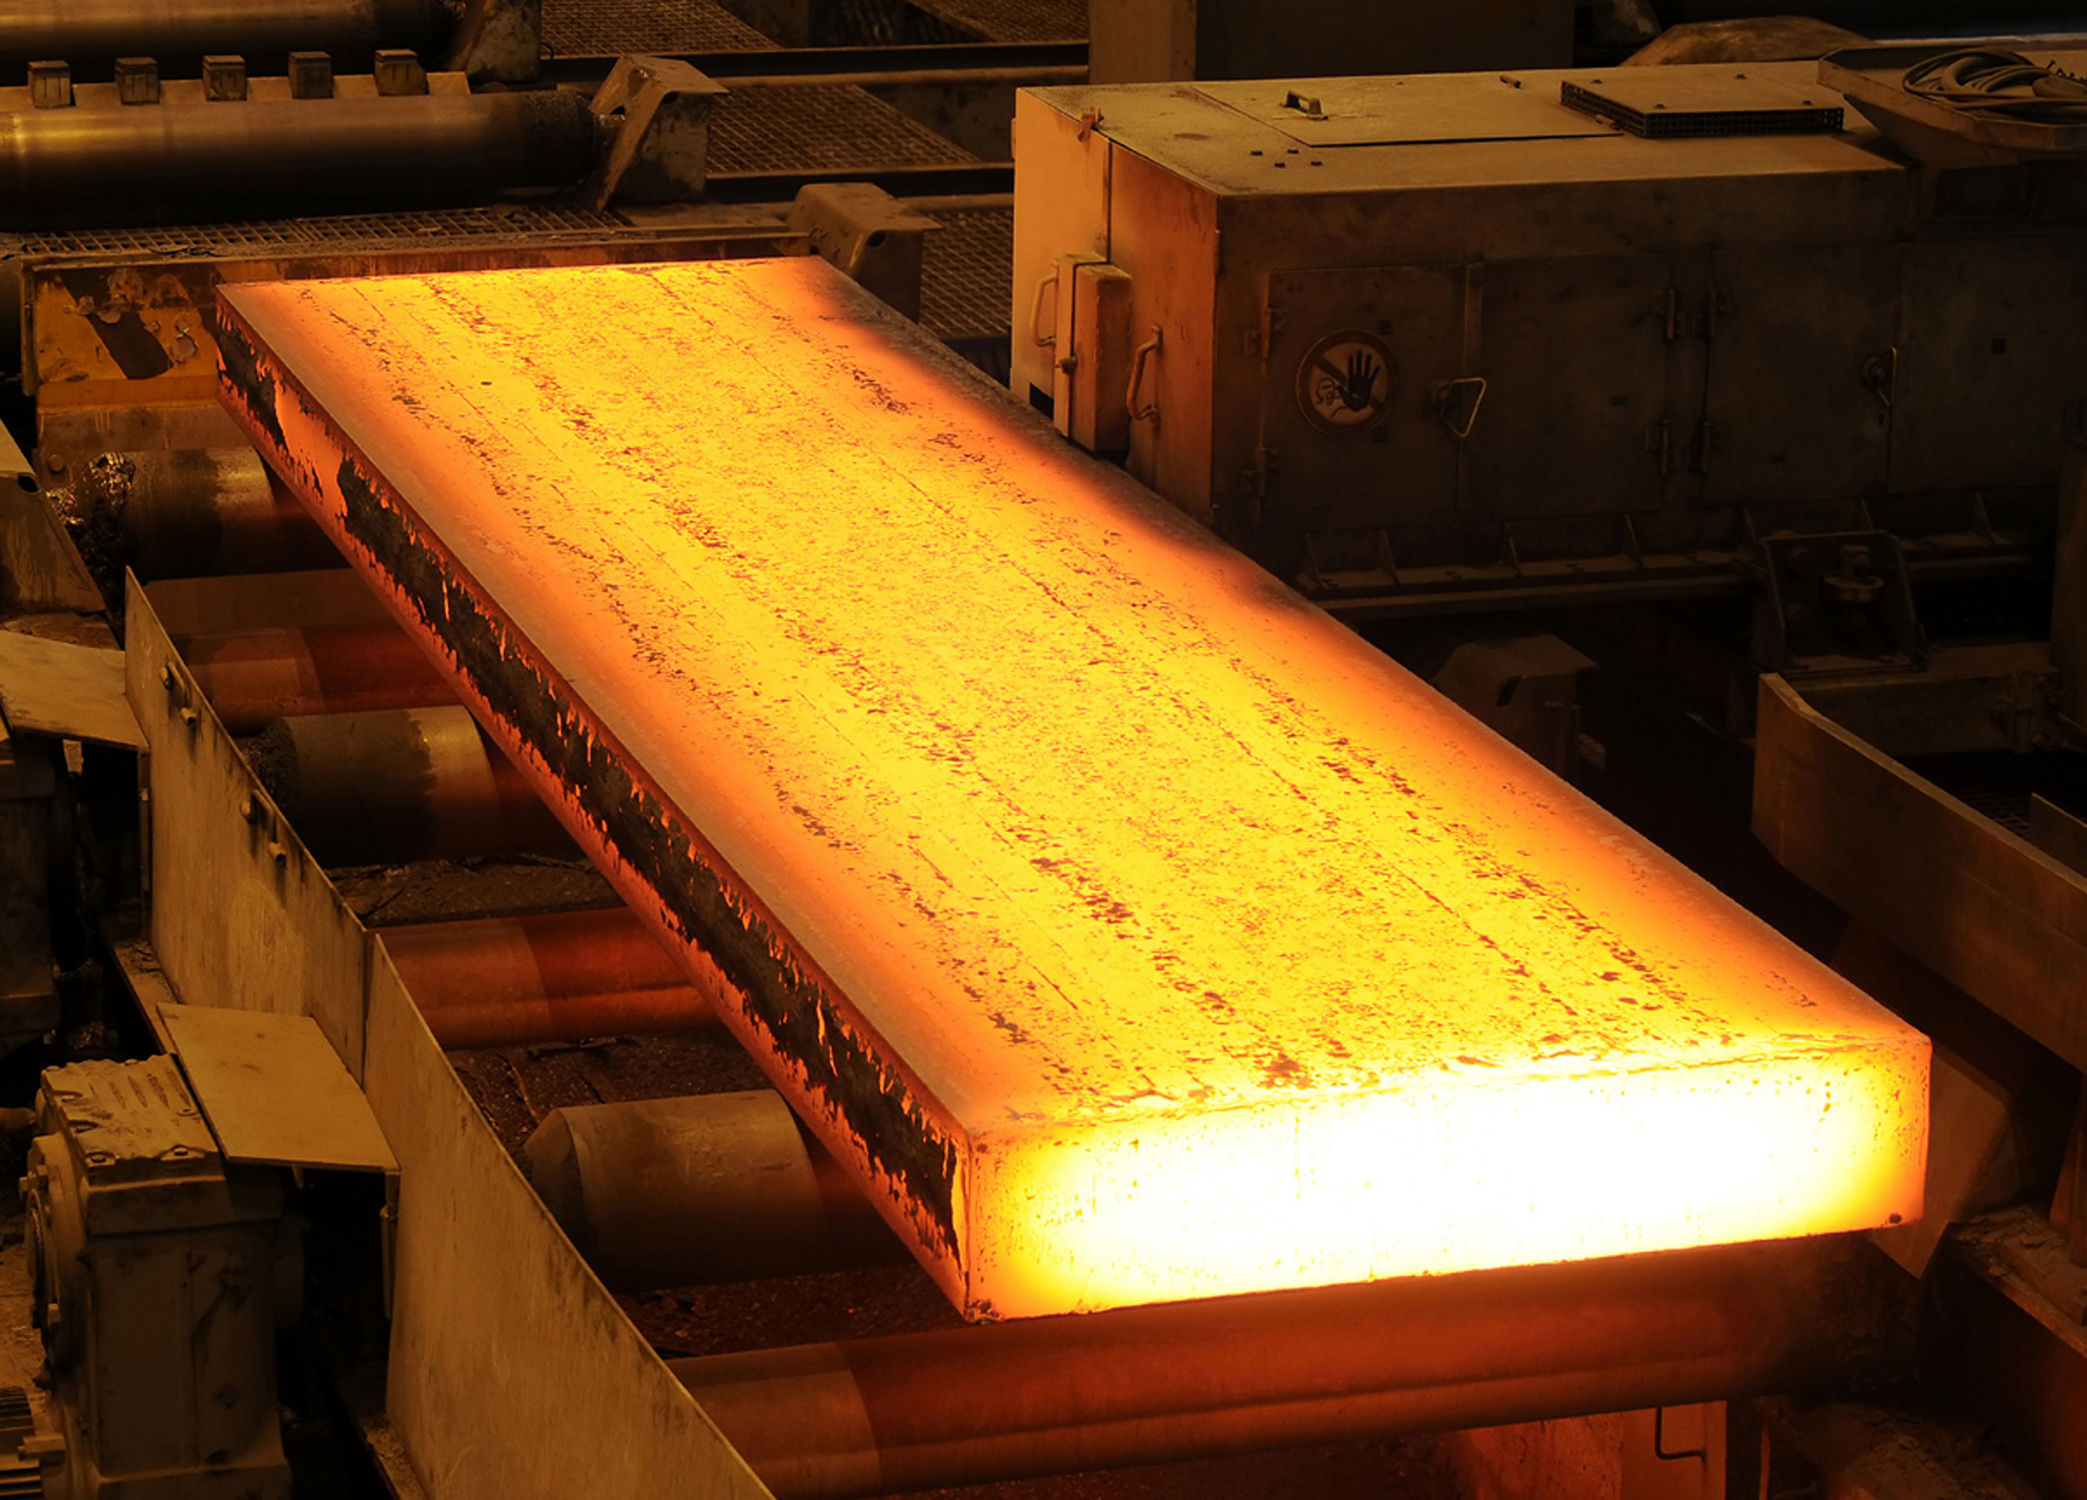 Production of 5 Grid Alloy During the Last Four Months by Hormozgan Steel Company